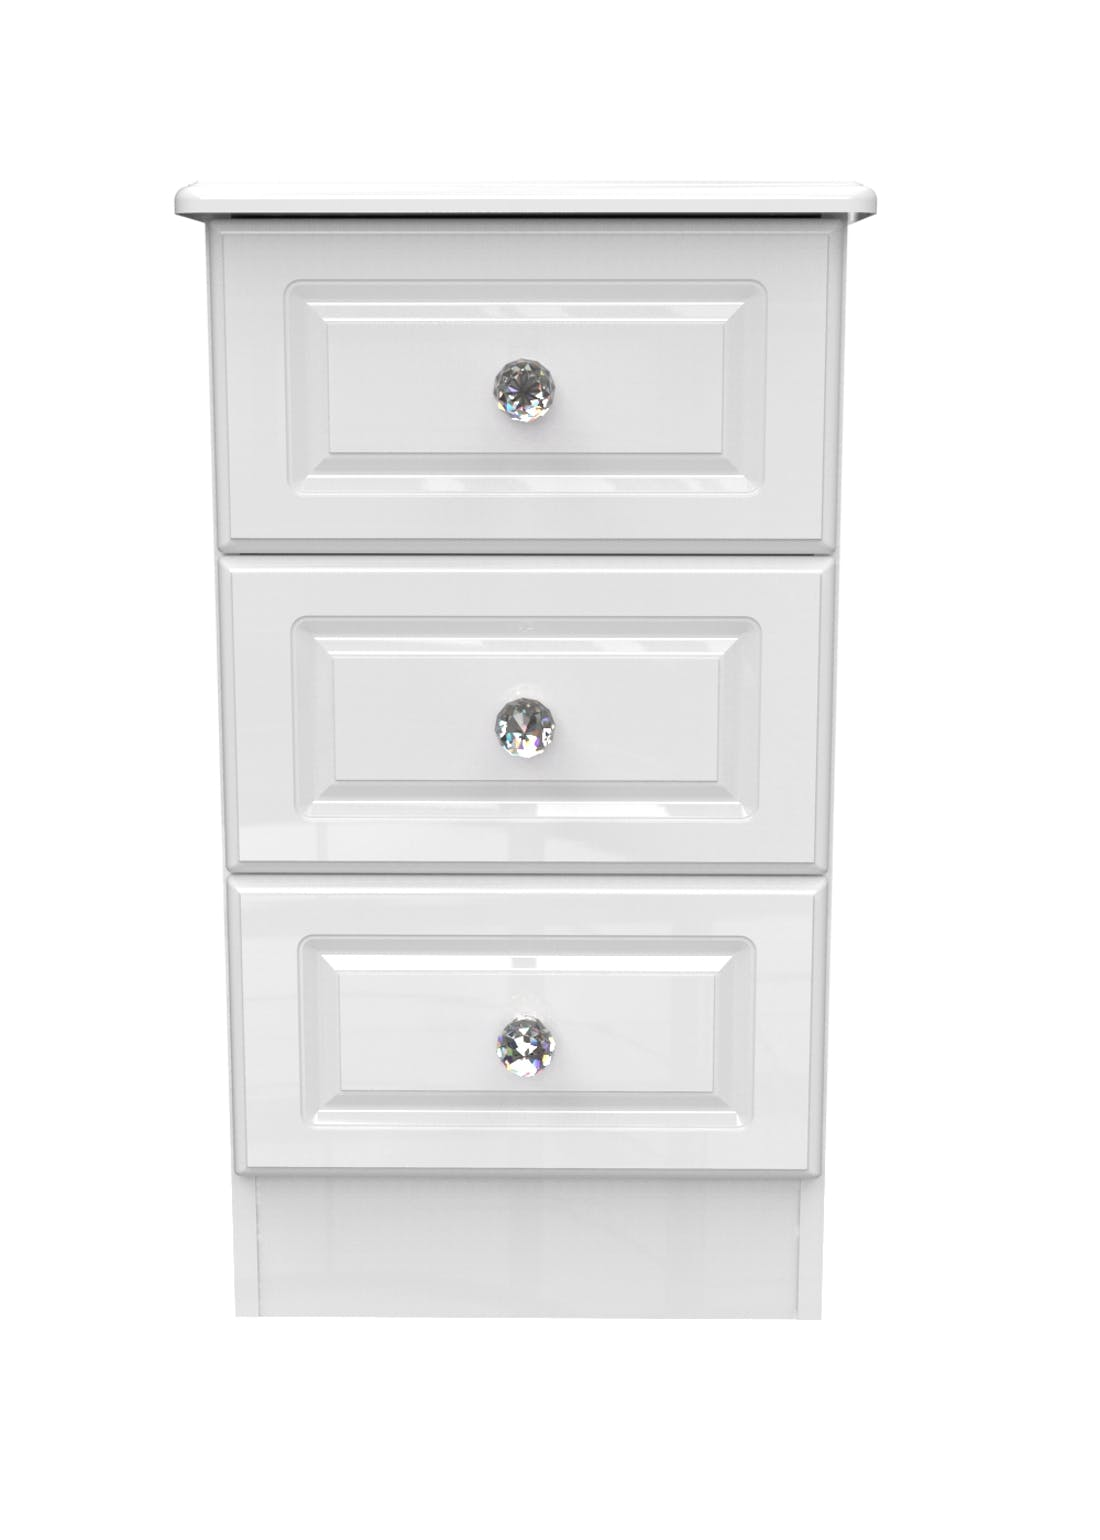 Swift Marlborough 3 Drawer Bedside Table (69.5cm x 39.5cm x 41.5cm)